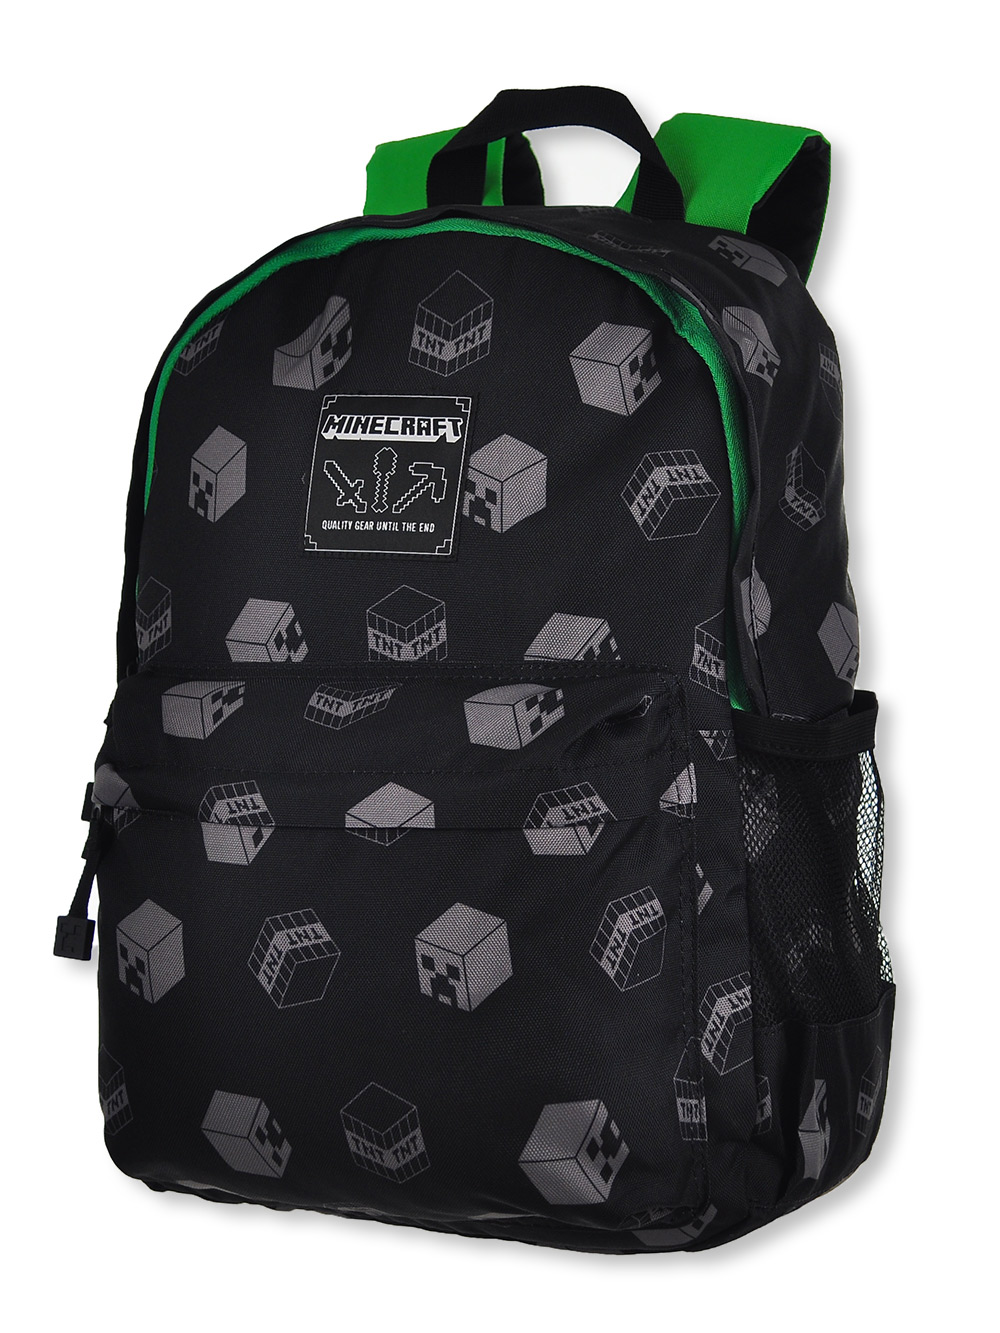 Boys Black and Green Backpacks